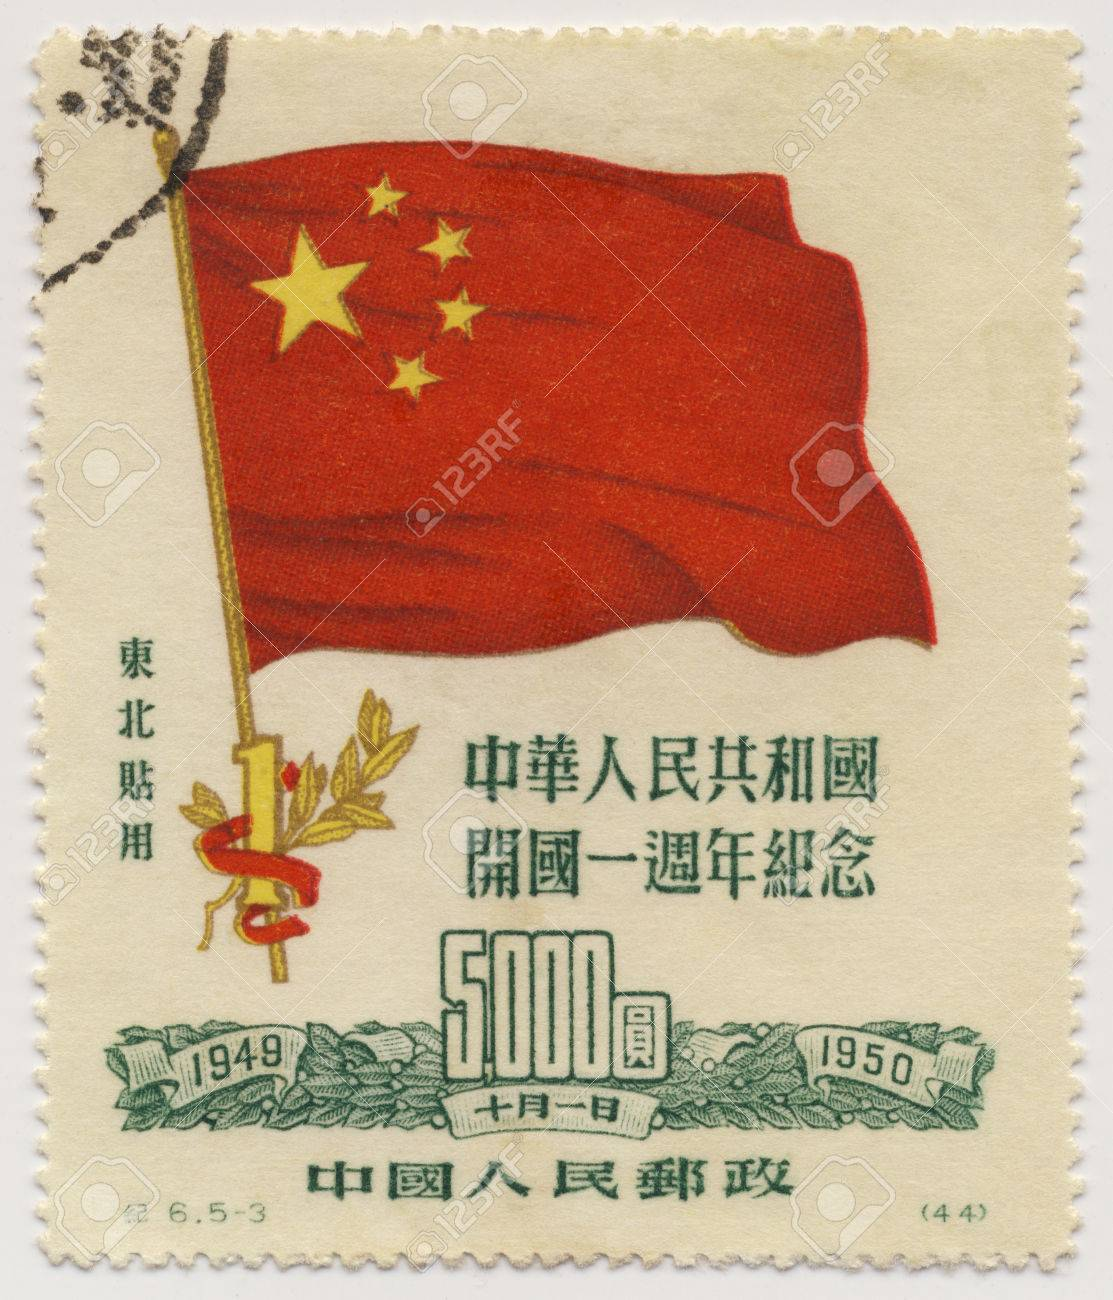 a chinese postage stamp circa 1950 with the flag of the peoples